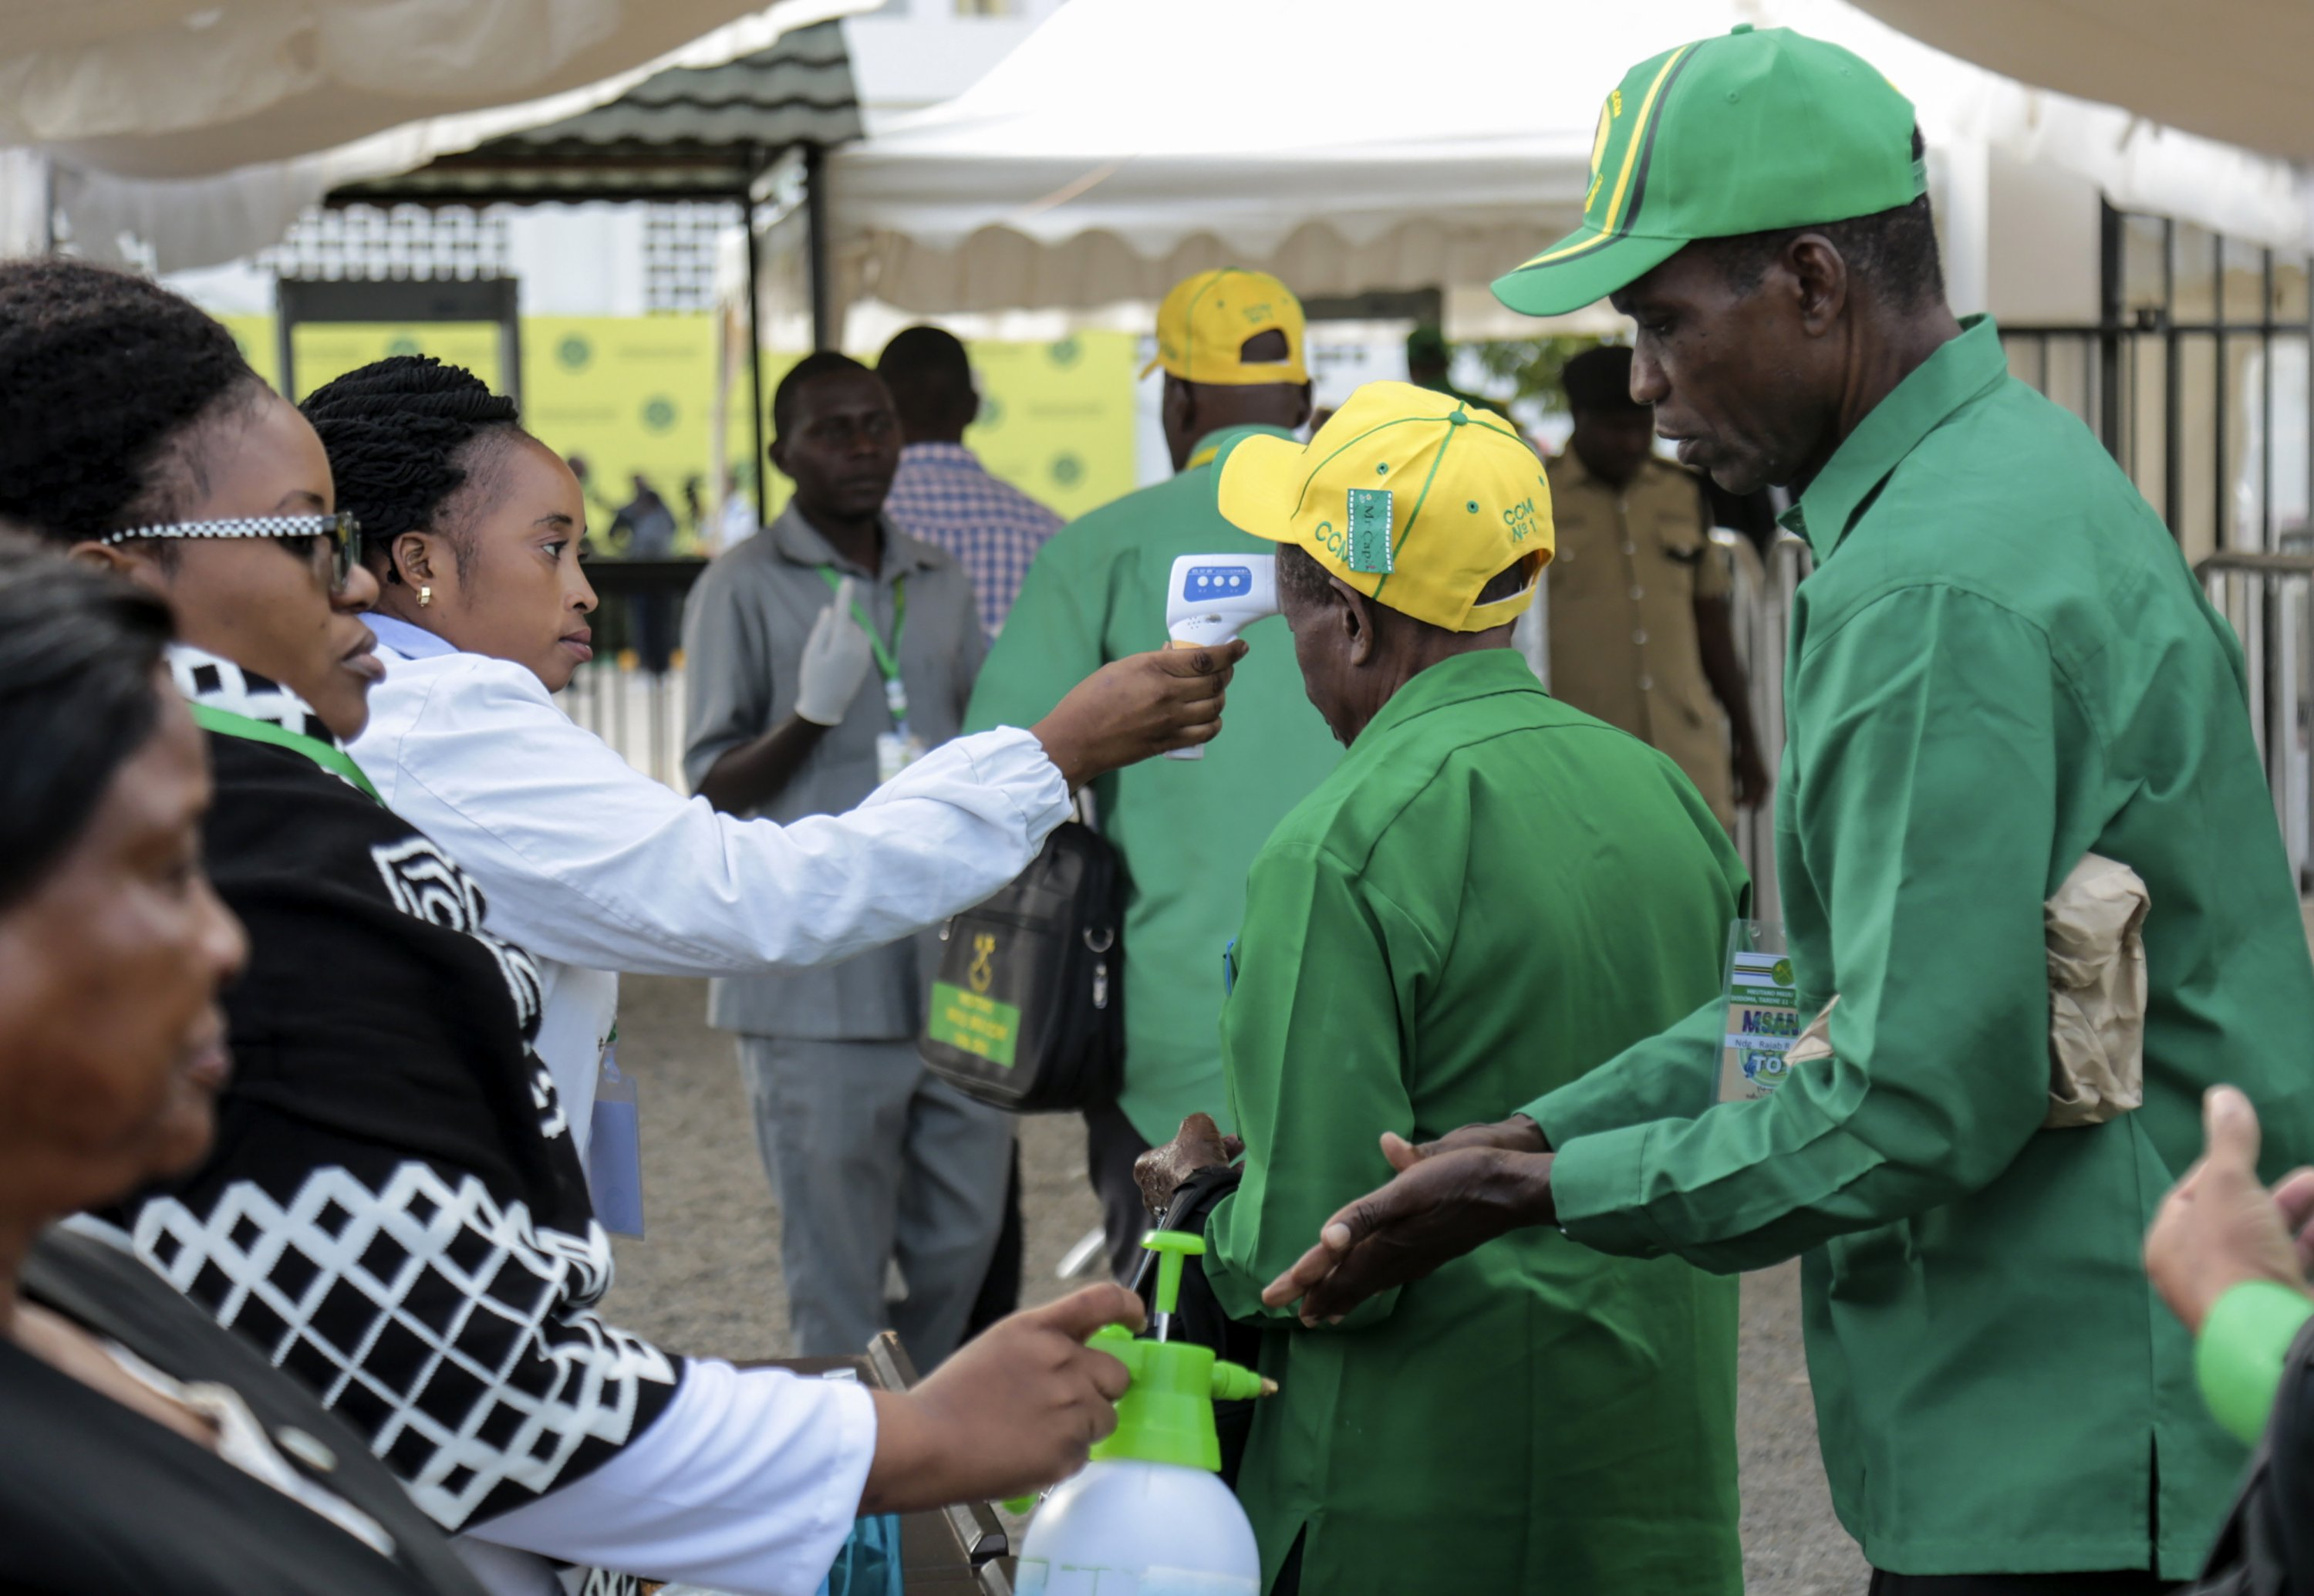 Party members have their temperature checked and sanitize their hands as a precaution against COVID-19 at the national congress of the ruling Chama cha Mapinduzi (CCM) party in Dodoma, Tanzania, July 11, 2020. (AP Photo)